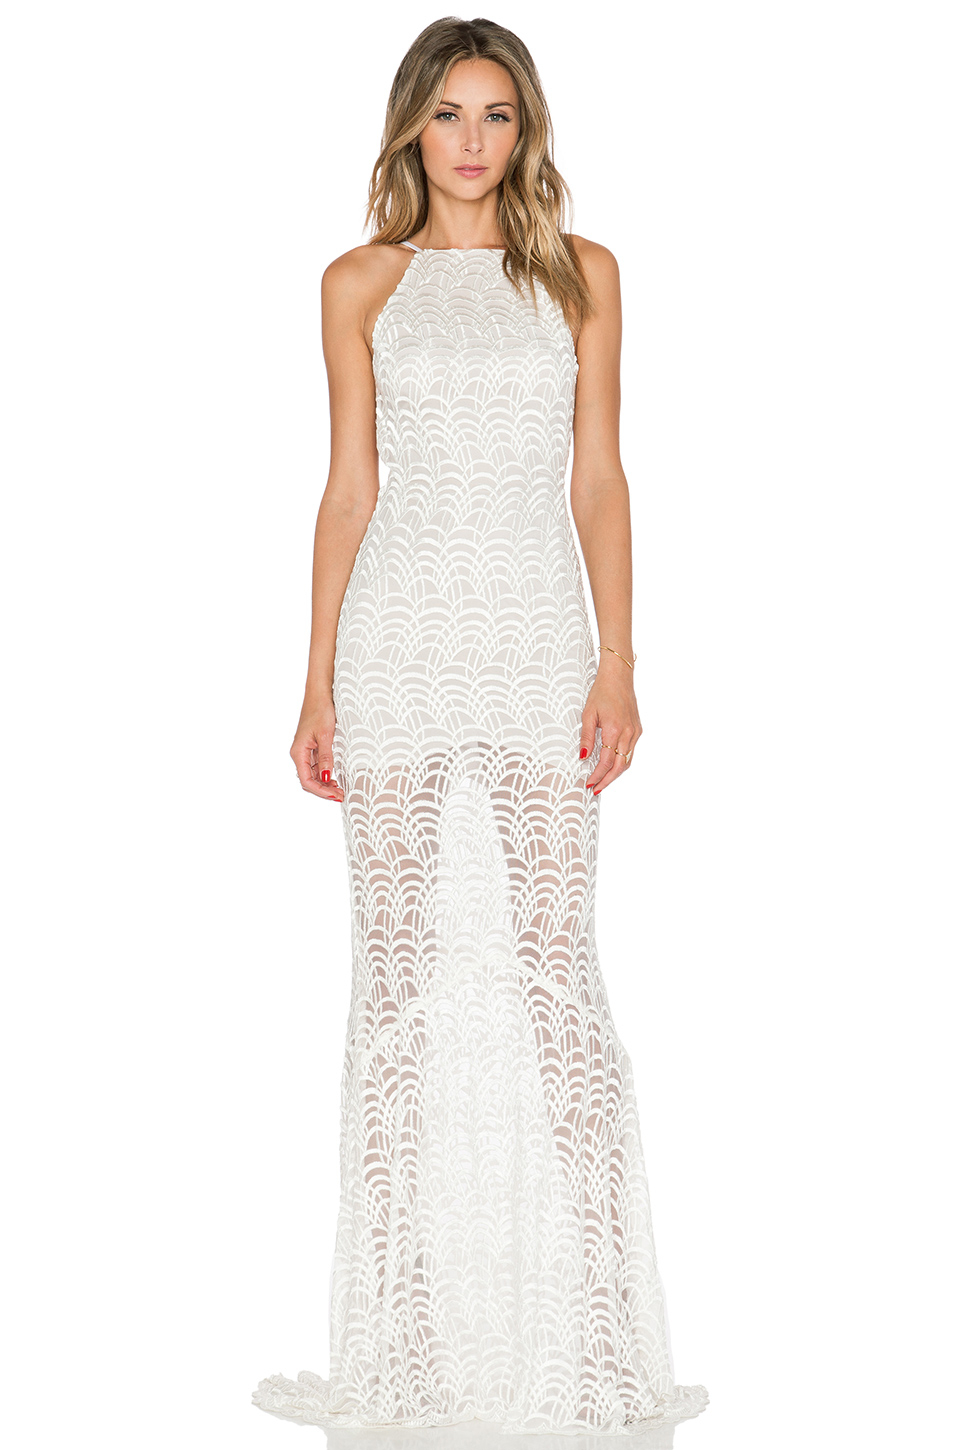 Lyst - Stone Cold Fox Logan Gown in White